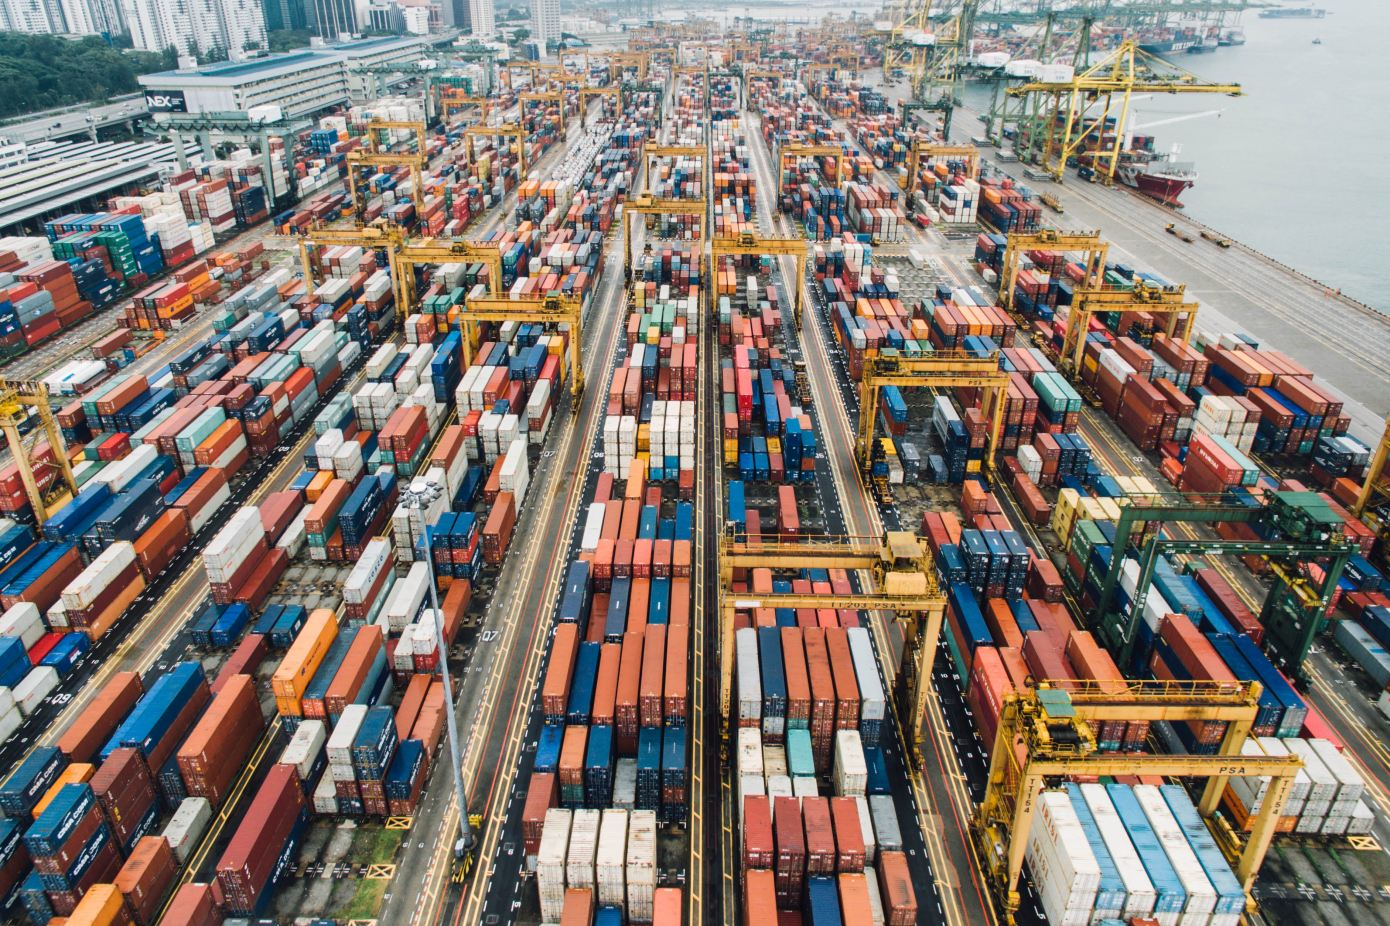 BlueCargo optimizes stacks of containers for maximum efficiency